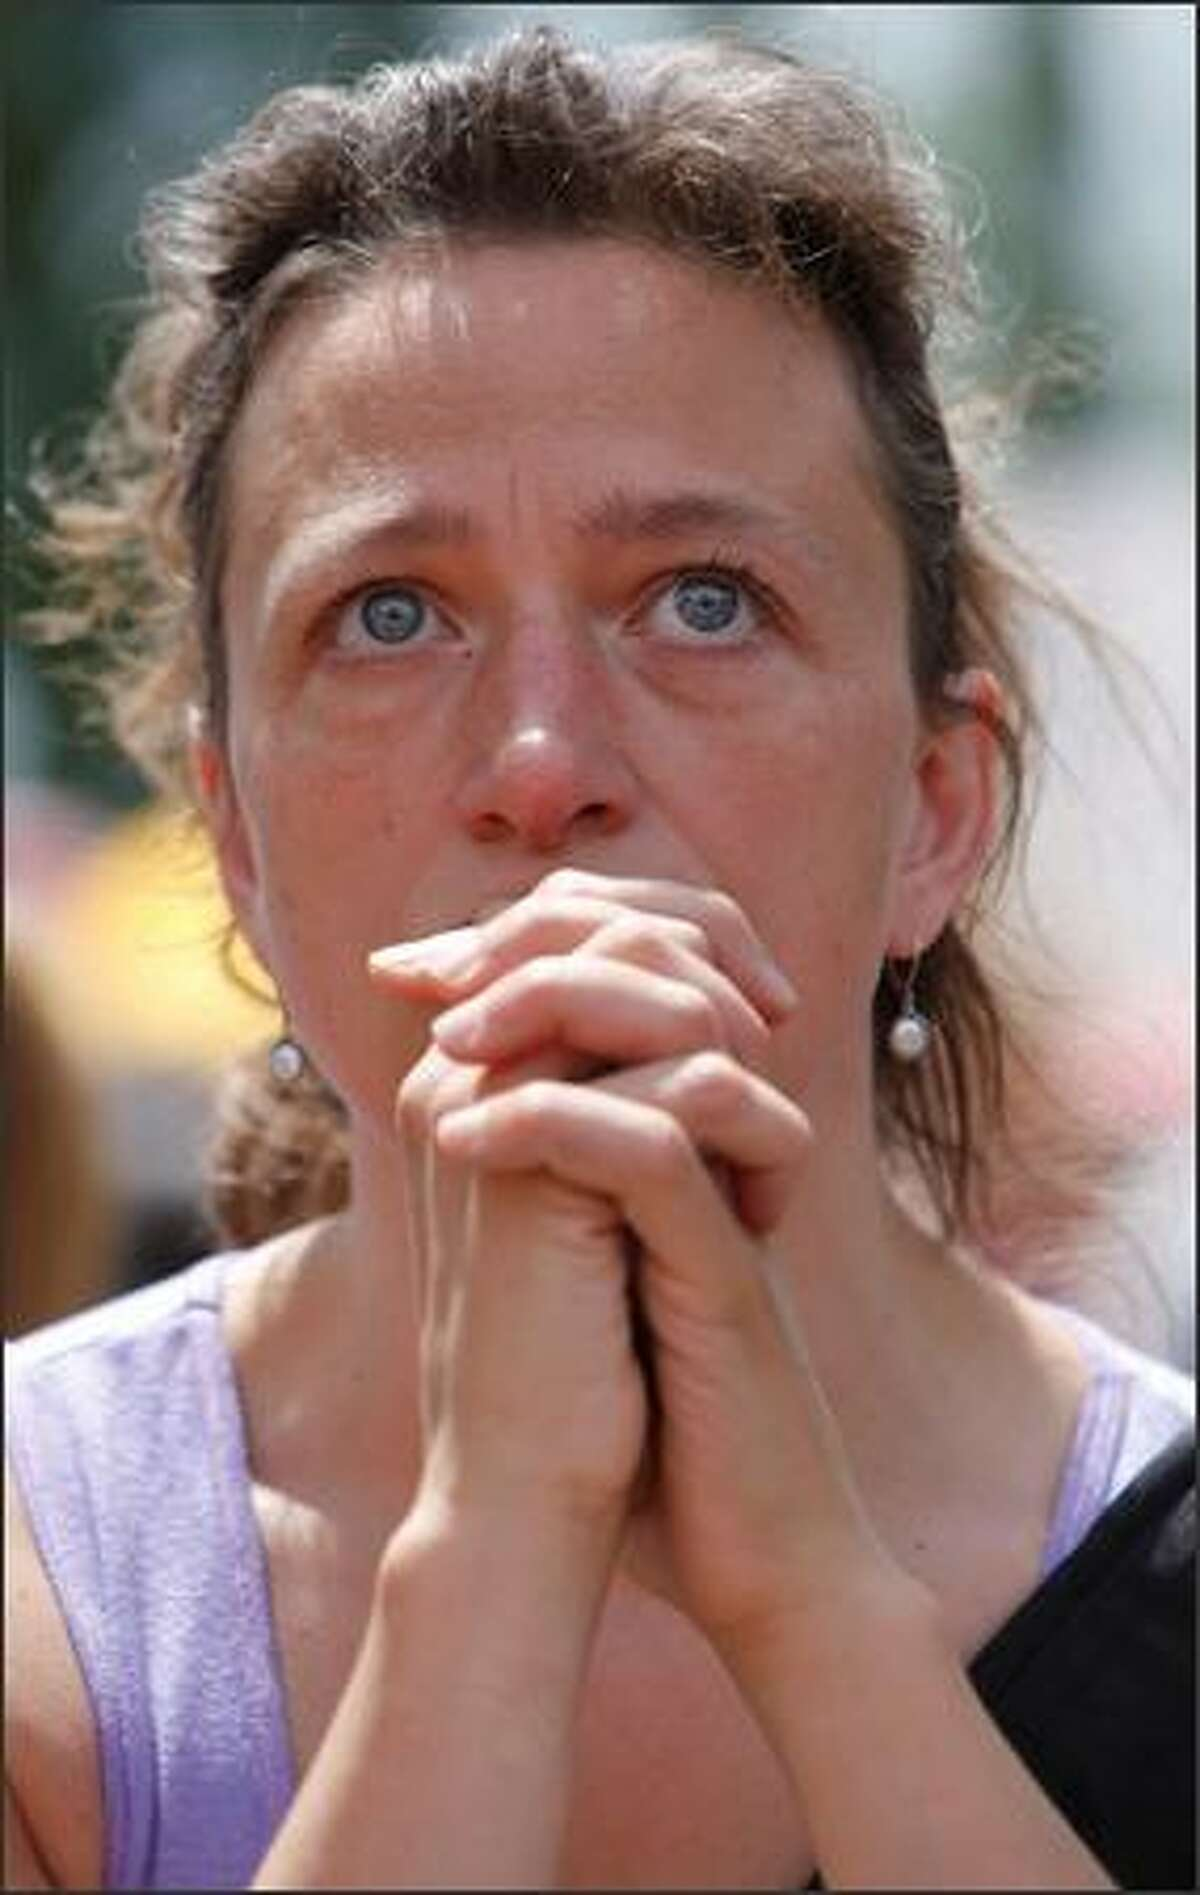 Seattle resident Jen Vetrovs tears up while hearing a story about a young boy's mother who died.